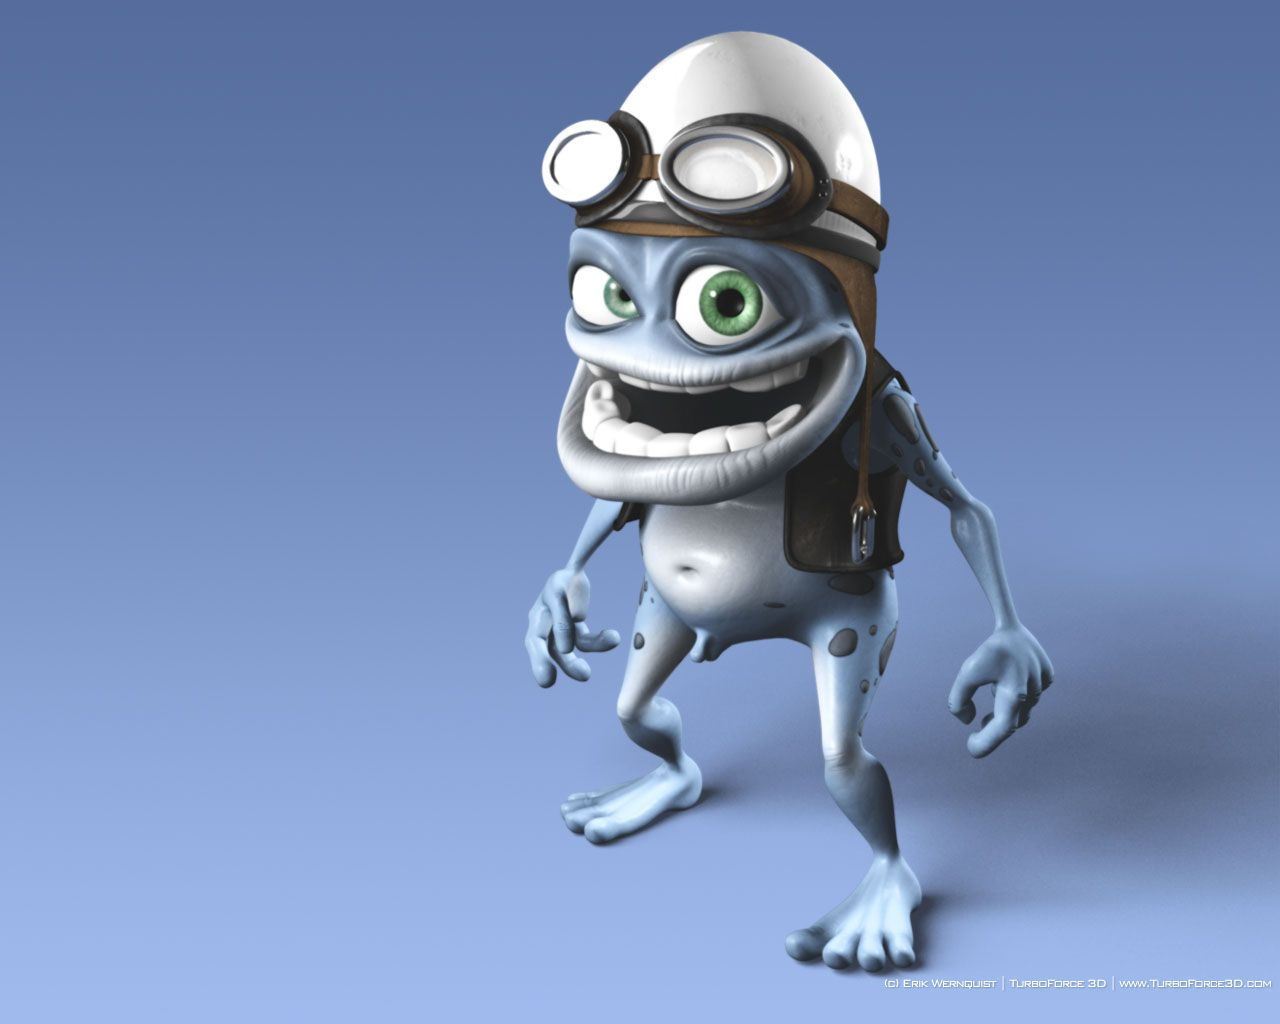 Funny Frog Cartoon Meme : From crazy frog to going up on a tuesday: how memes replaced